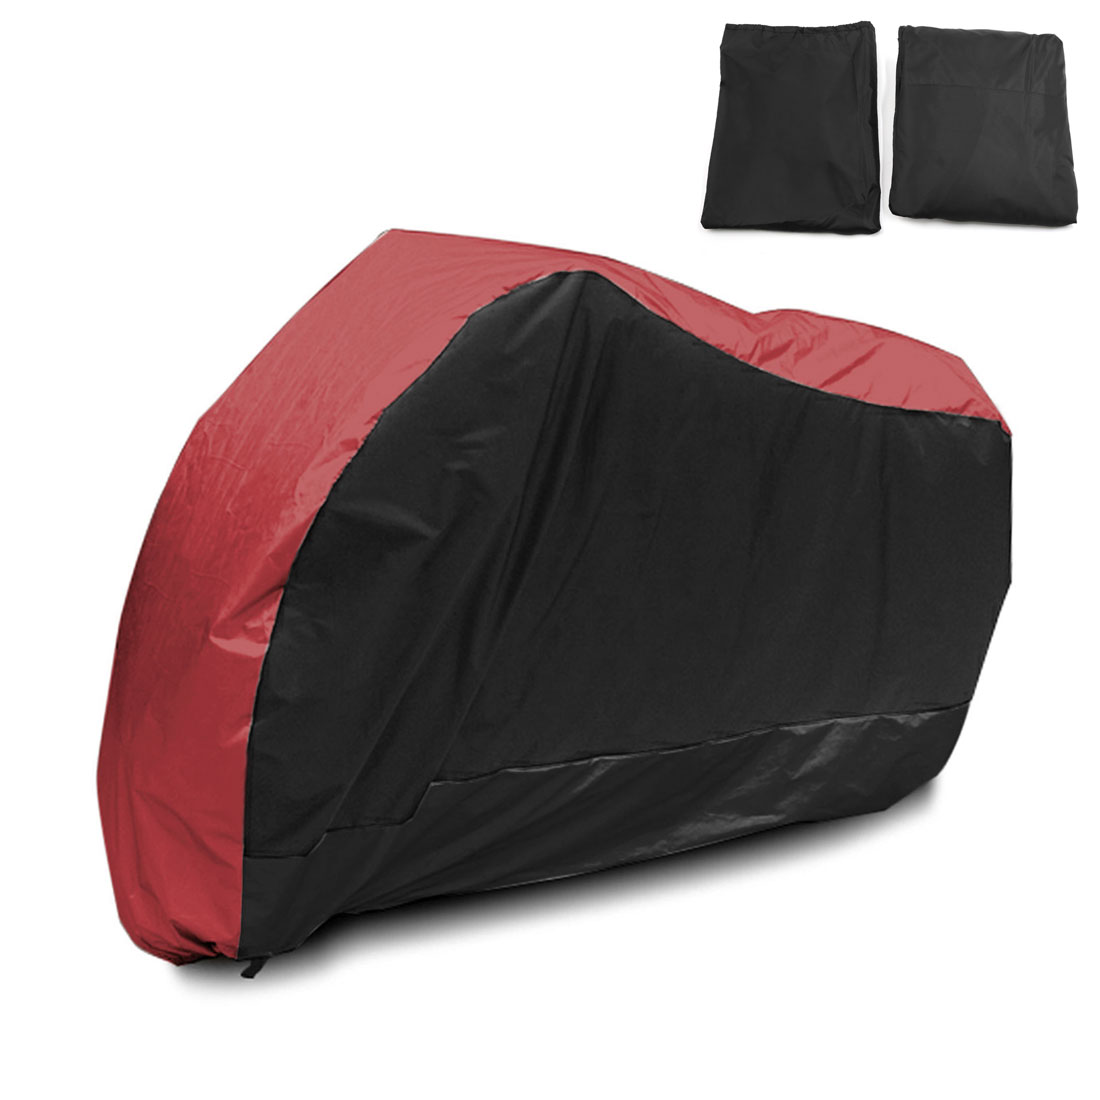 XXXL Motorcycle Outdoor Cover For Honda Gold Wing GL 1000 1100 1200 1500 1800